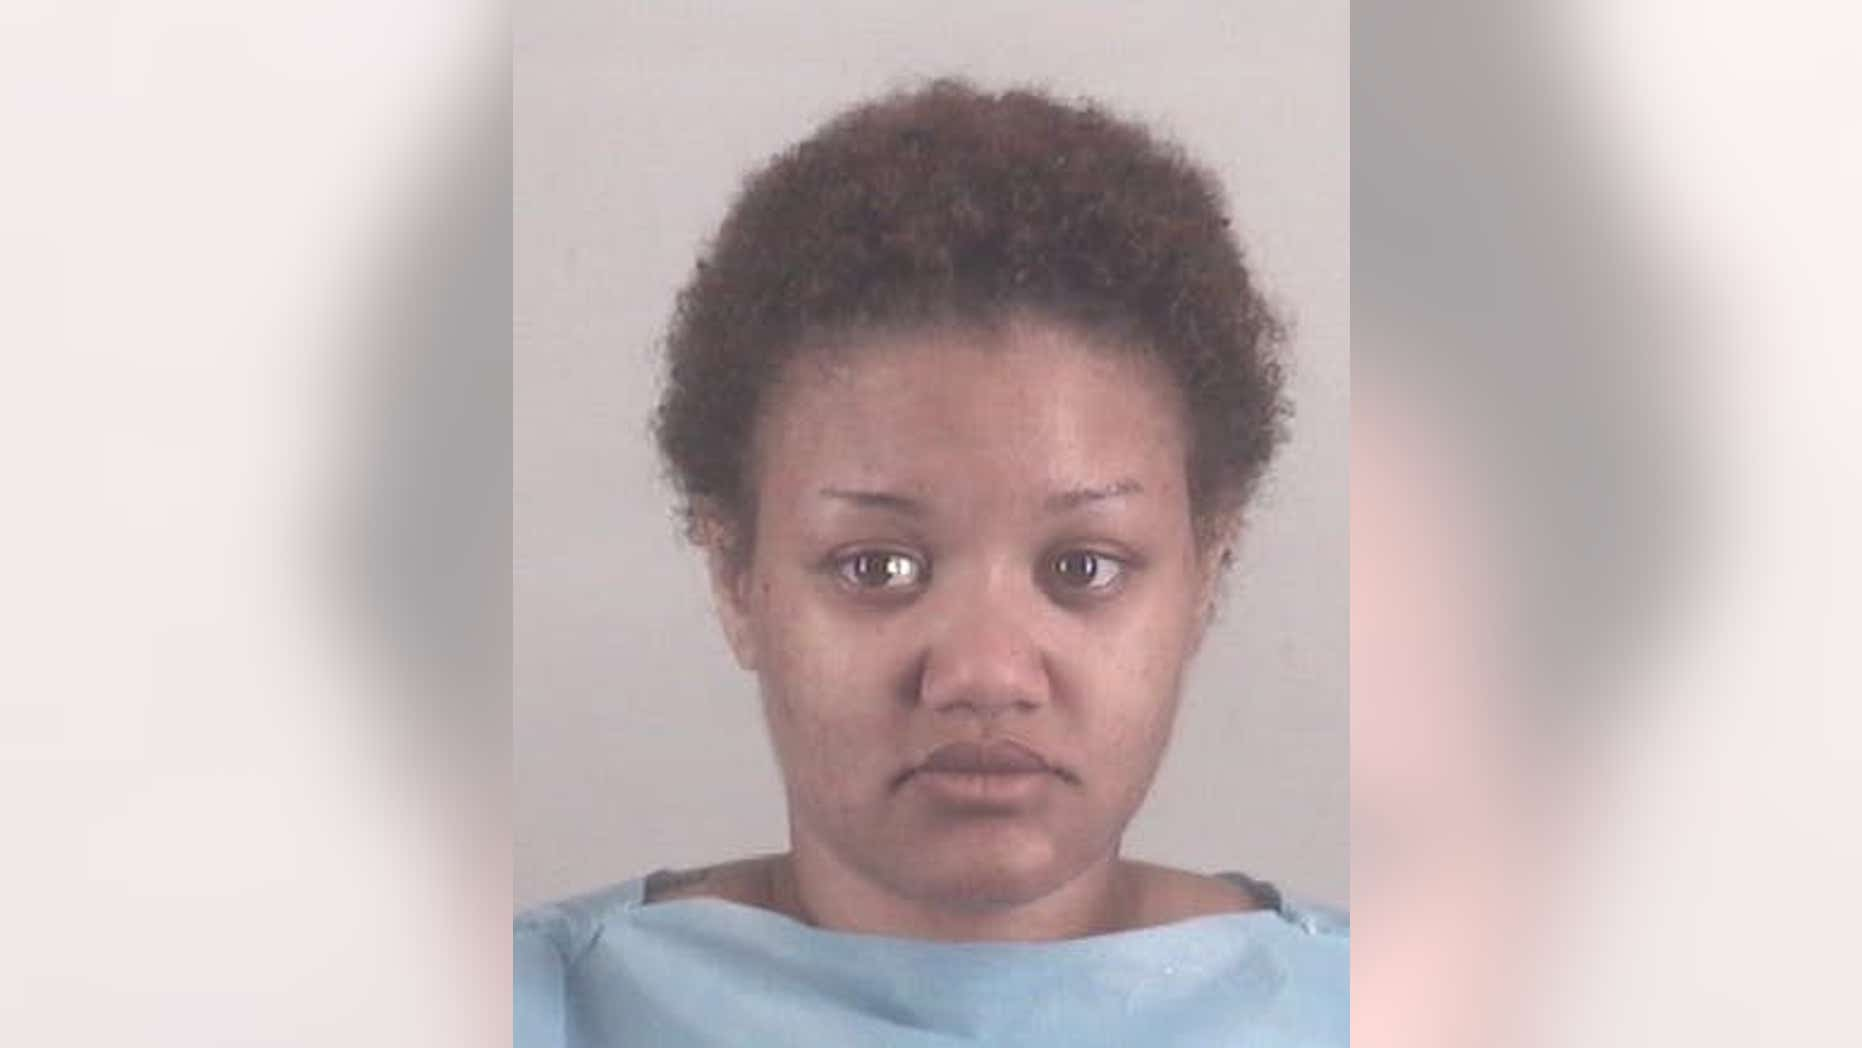 Westlake Legal Group dddd Texas mom who blamed son, 3, with 6-week-old's death faces murder charge: report fox-news/us/us-regions/southwest/texas fox-news/us/crime fox news fnc/us fnc be176560-5885-5aa8-a516-6d317c4e6e6f article